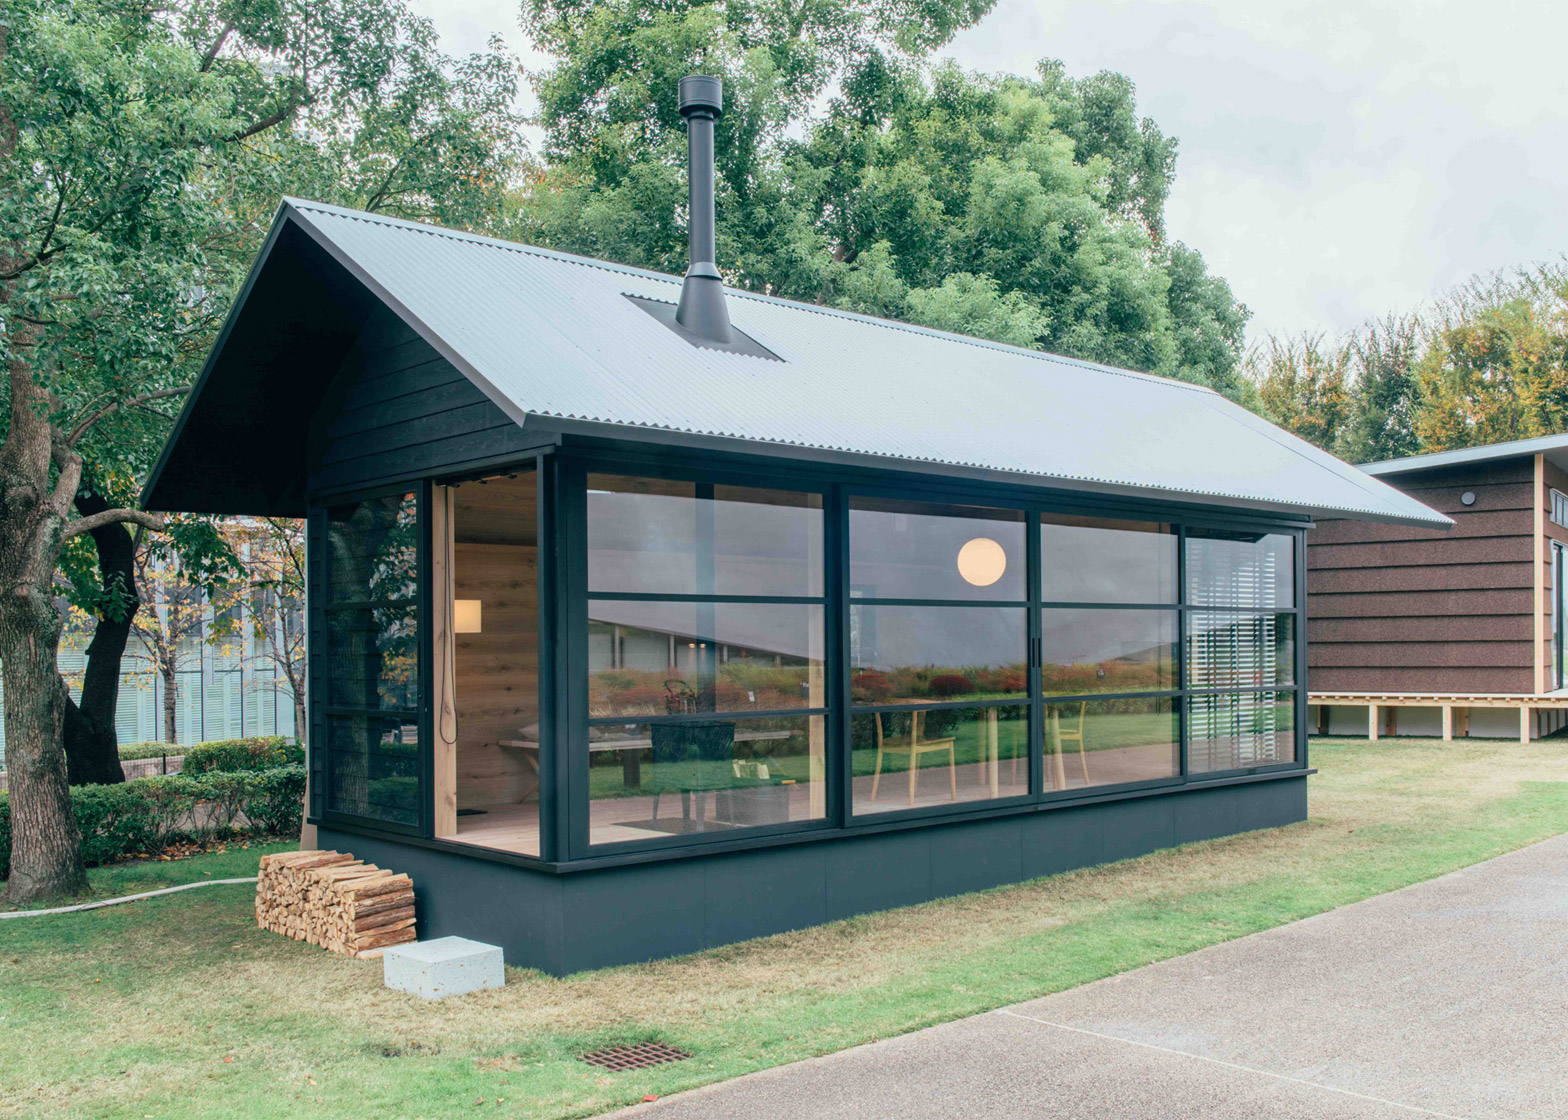 prefab garden office. Muji Is Moving Into The Garden Office/tiny House Market With These Prefab Huts Designed By Konstantin Grcic (a Two-storey Build A Mezzanine), Office E